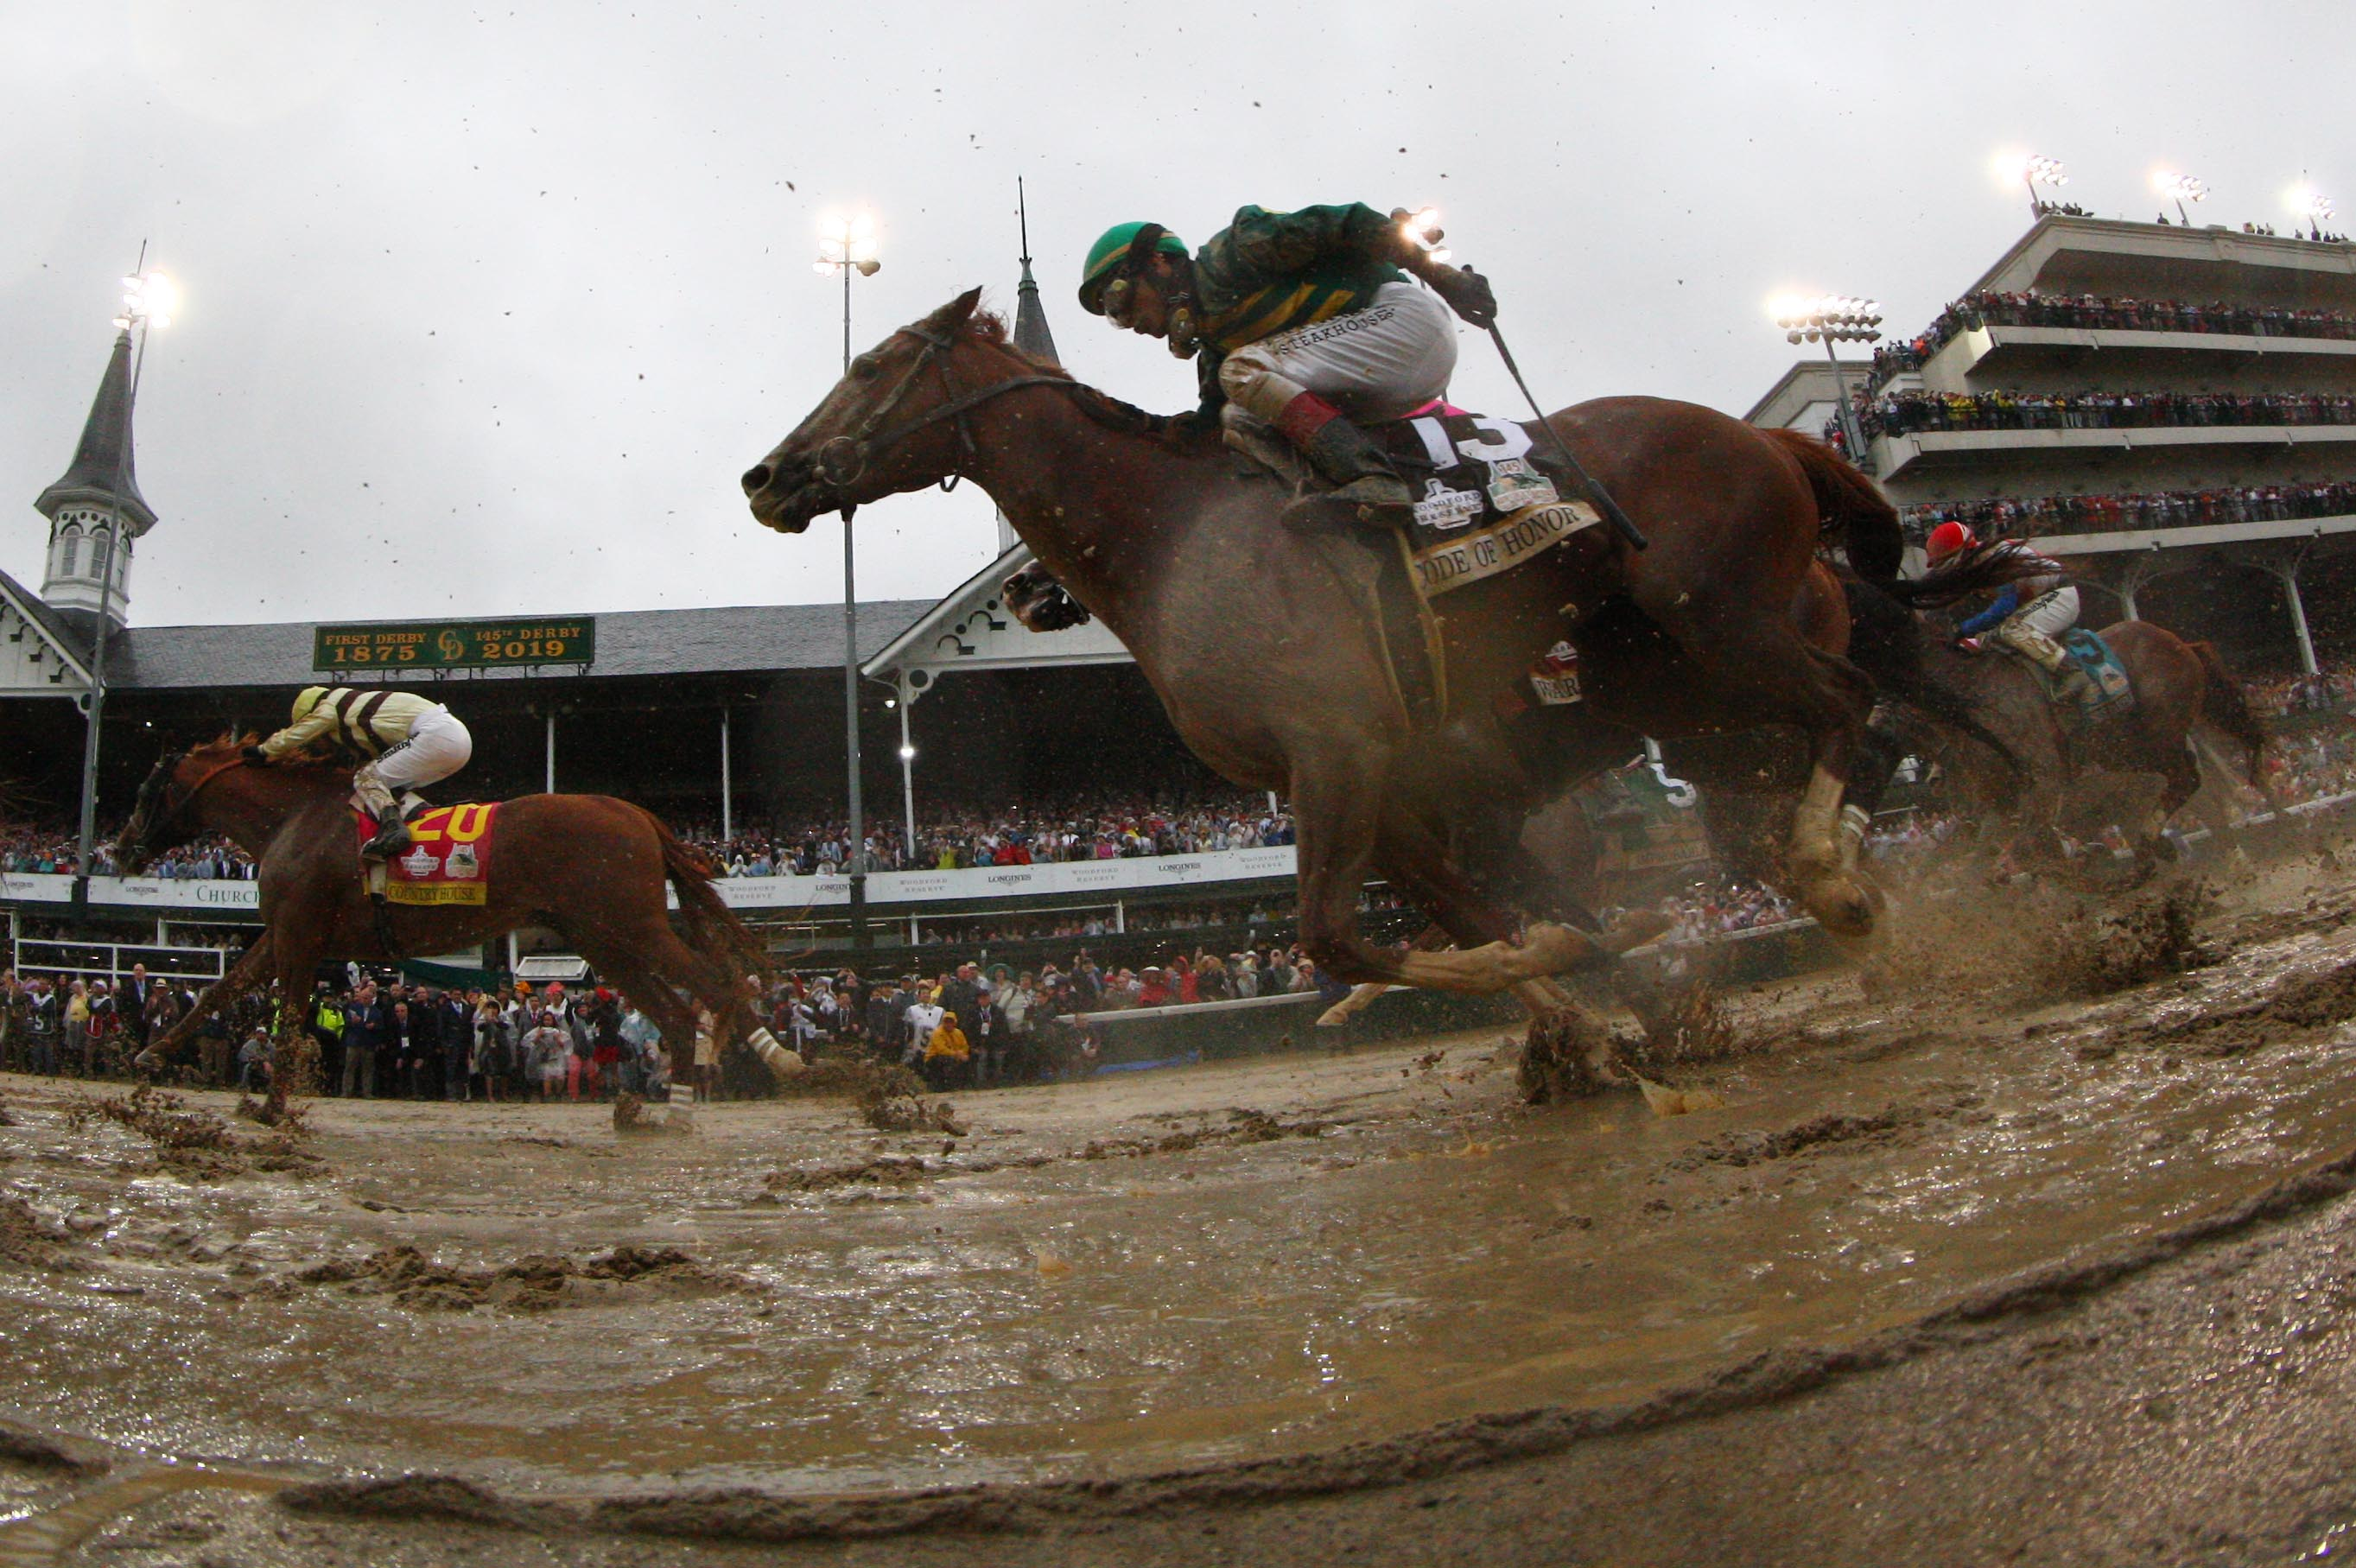 Kentucky Derby racehorses with ties to Tallahassee